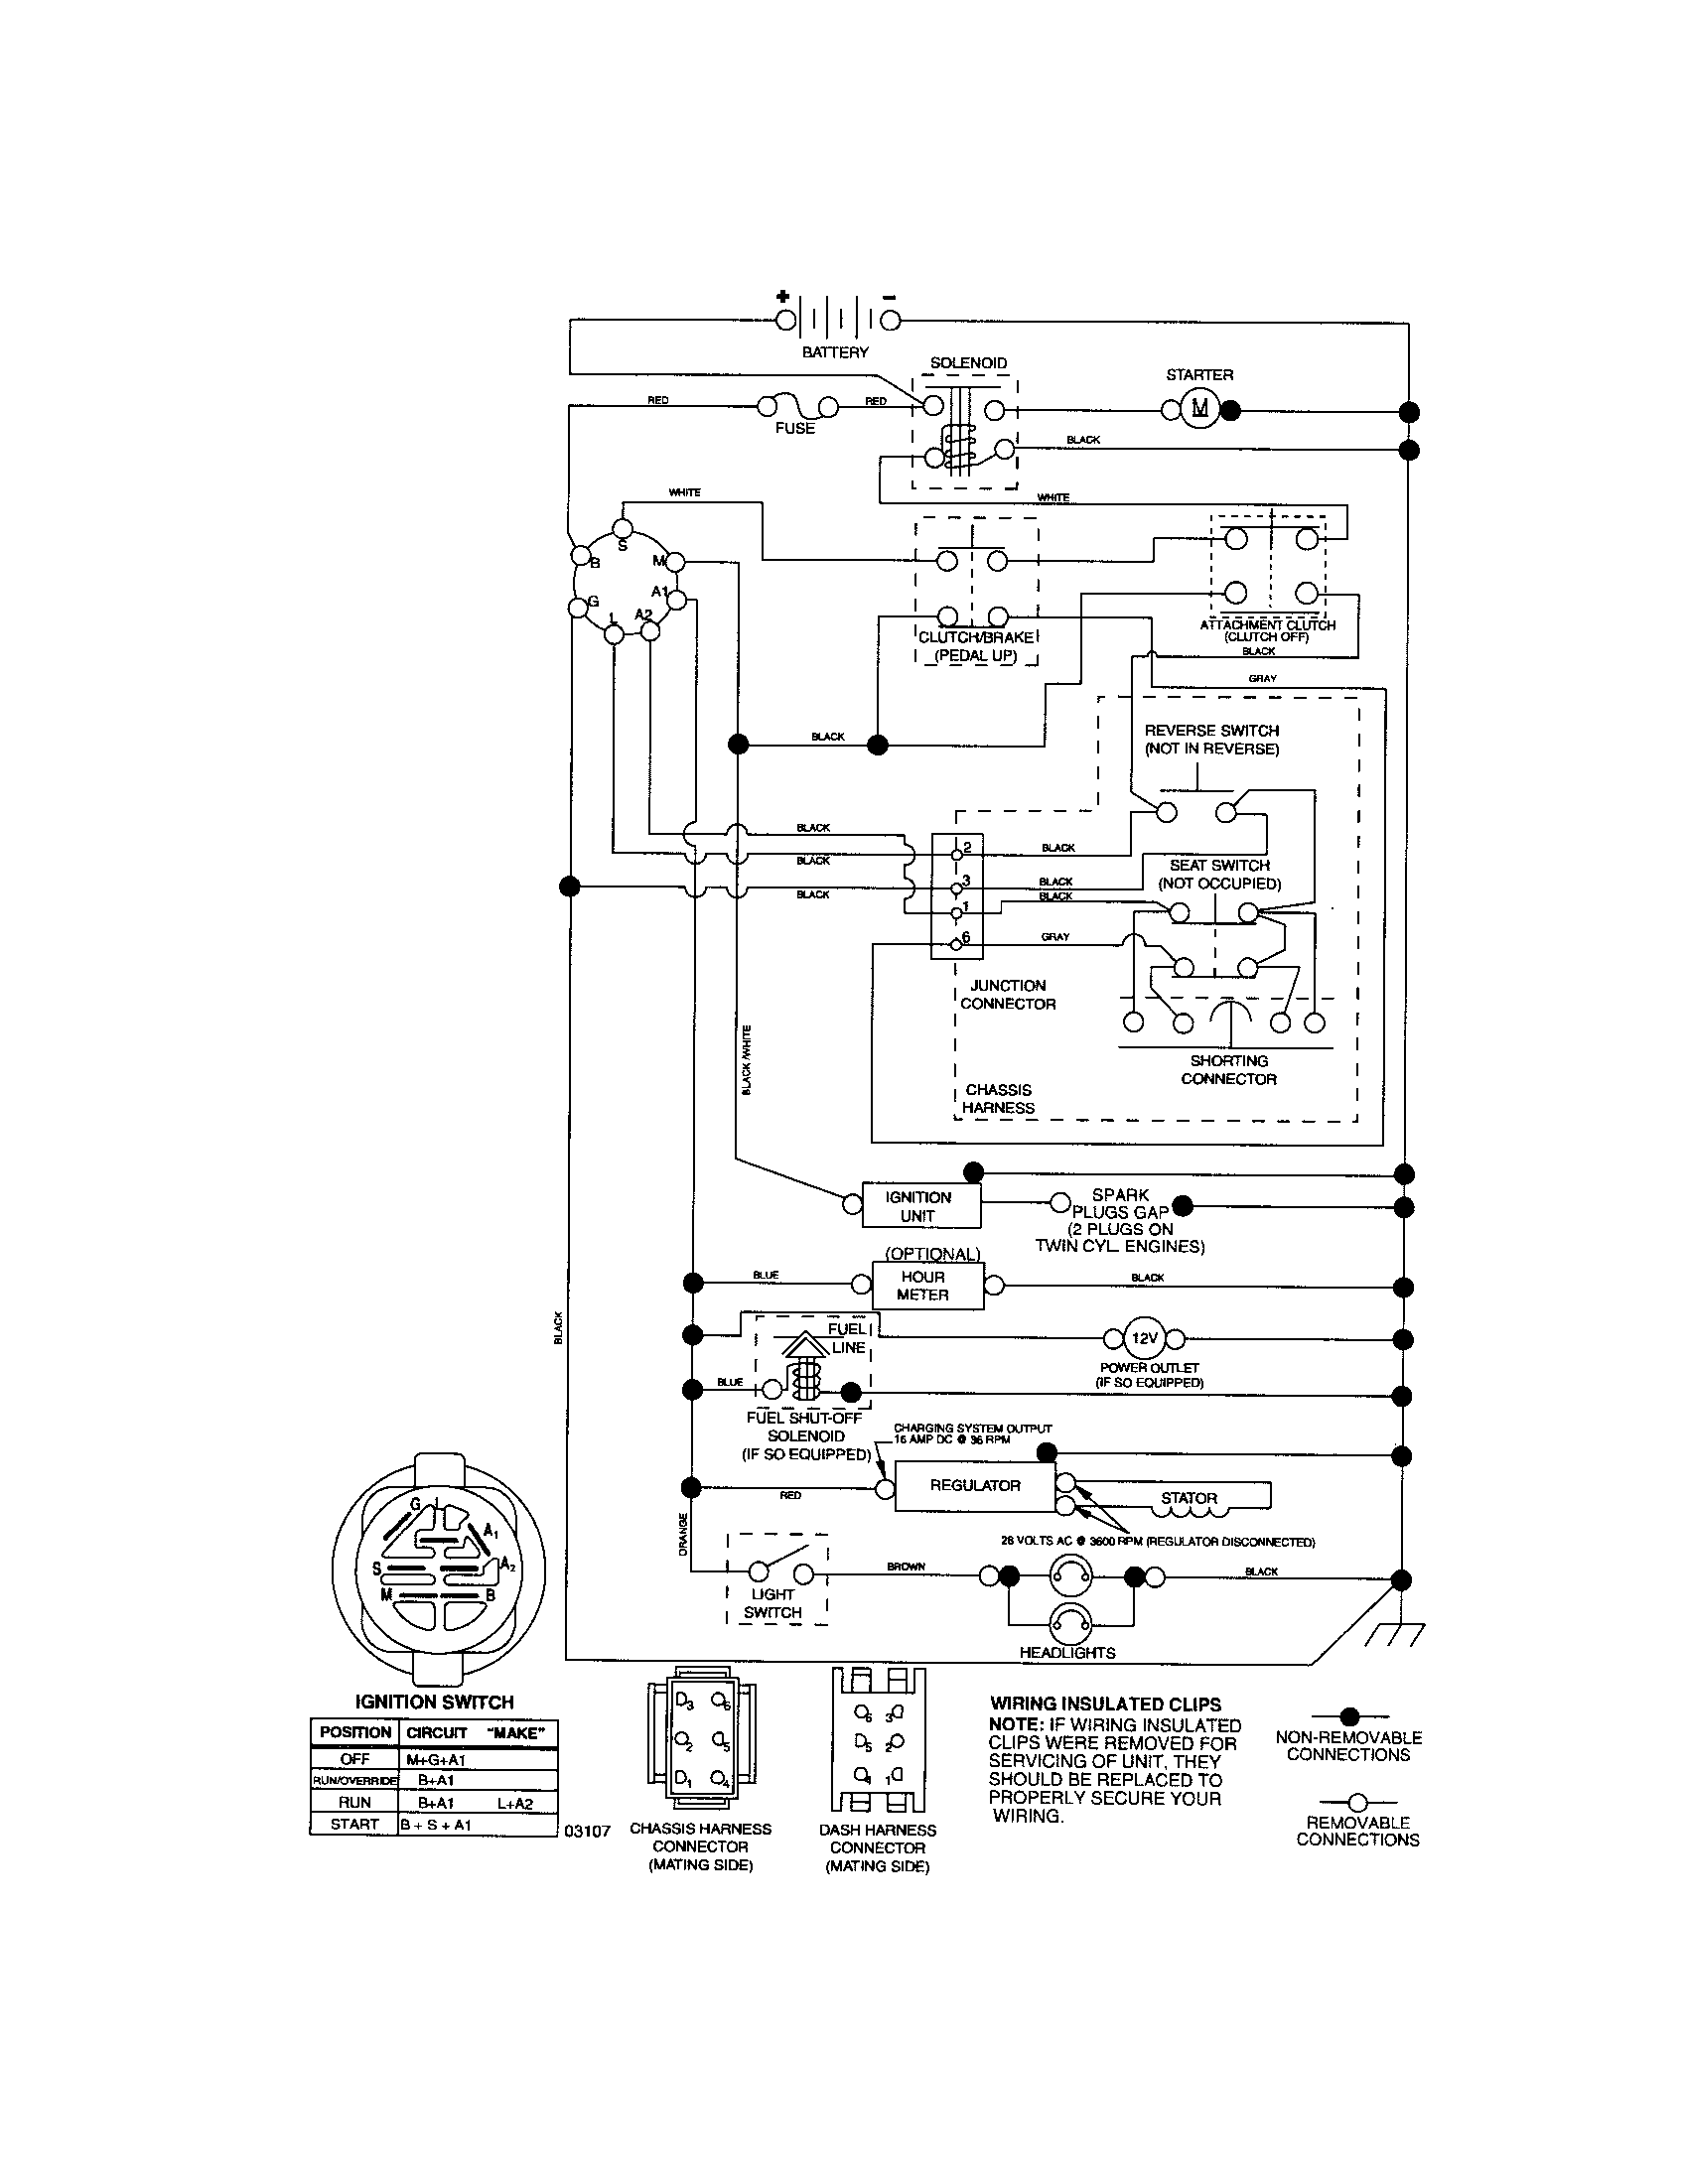 6af5f1447fd13c8443376822ddc1e105 craftsman riding mower electrical diagram wiring diagram  at aneh.co